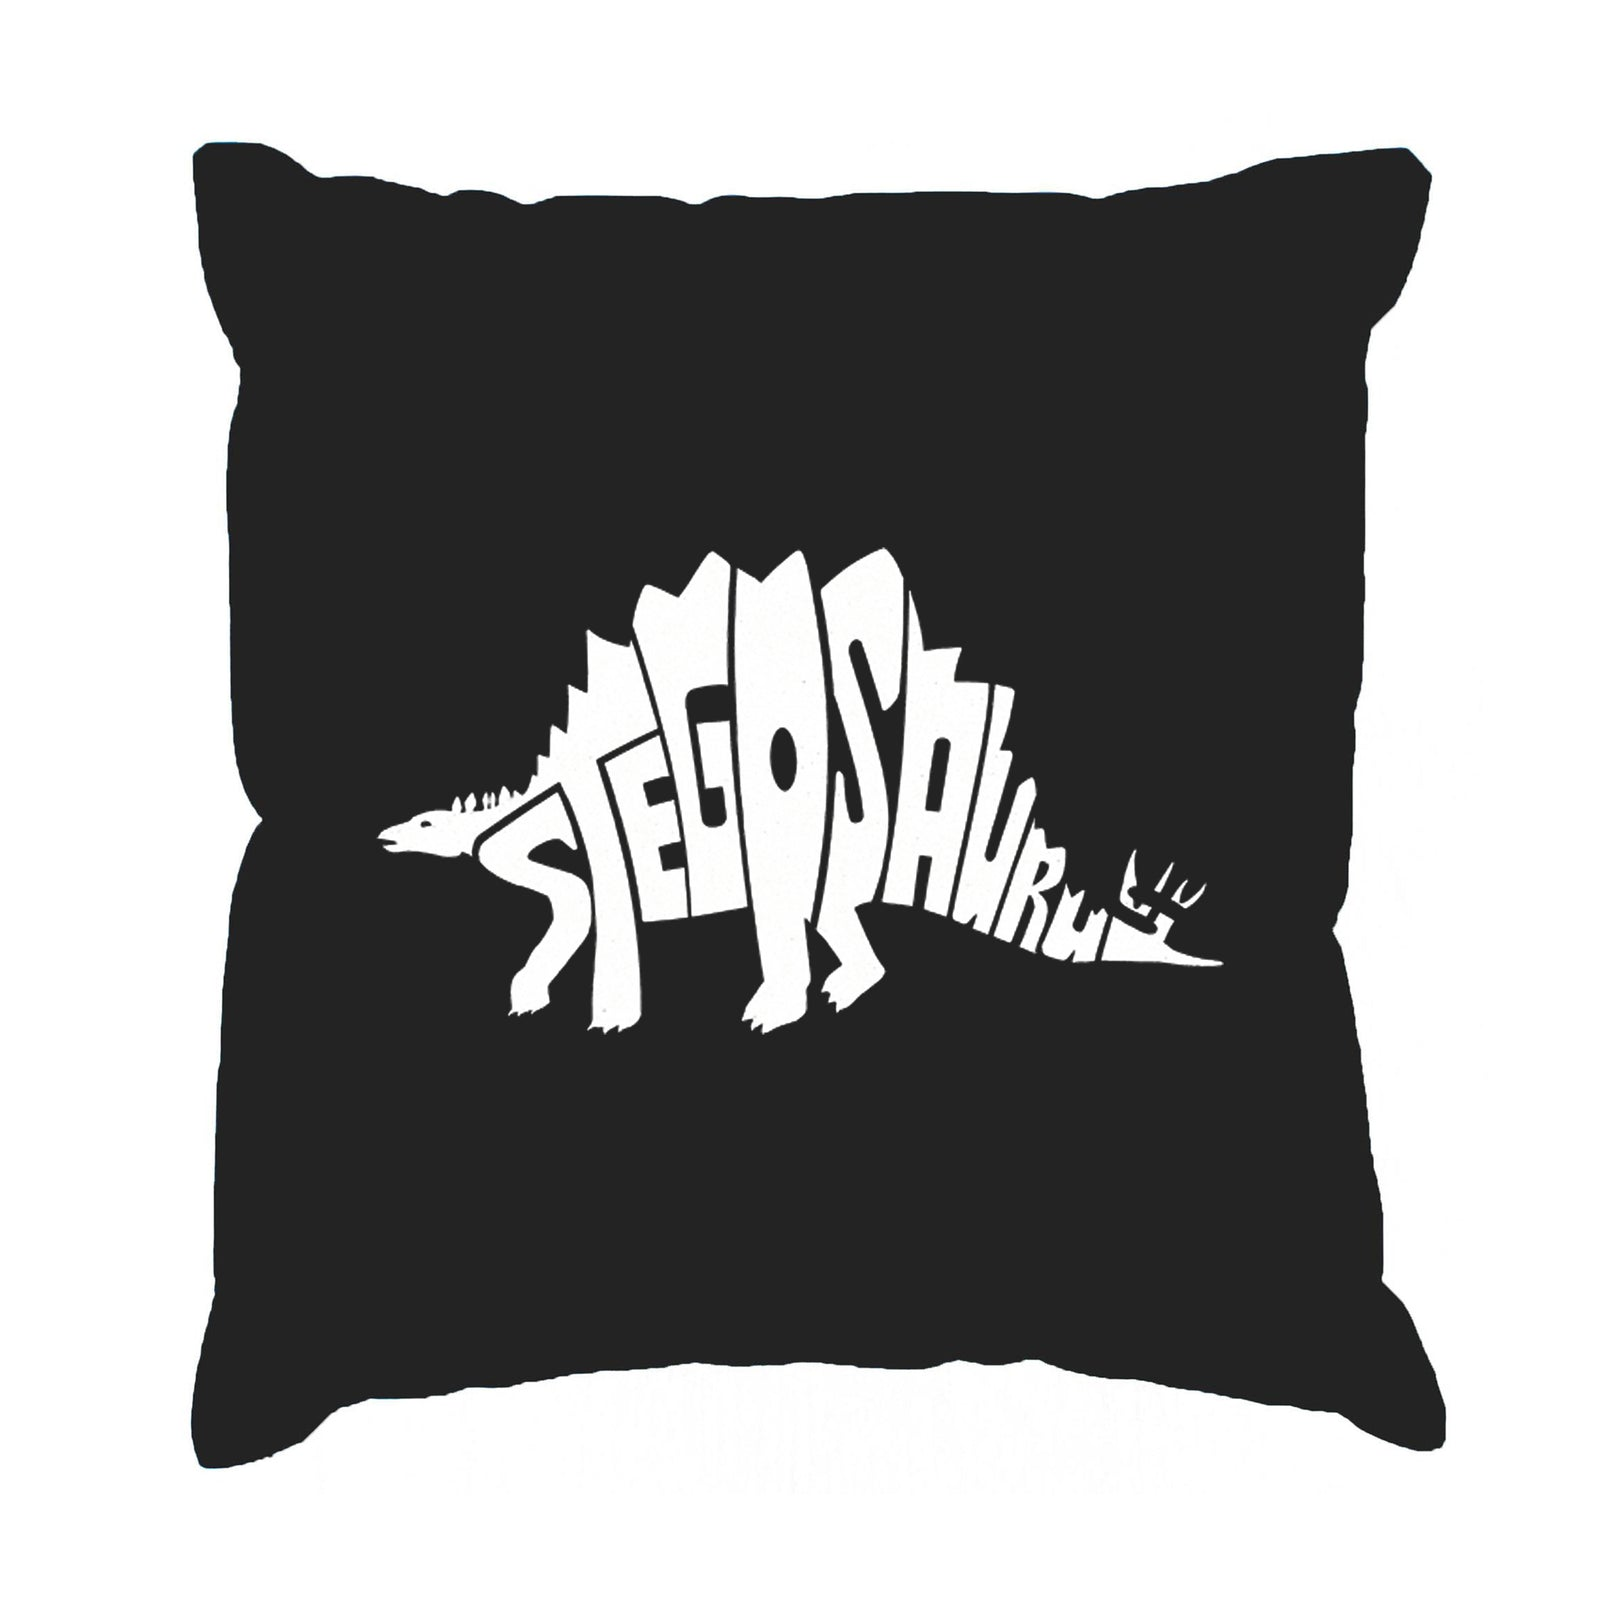 Throw Pillow Cover - STEGOSAURUS